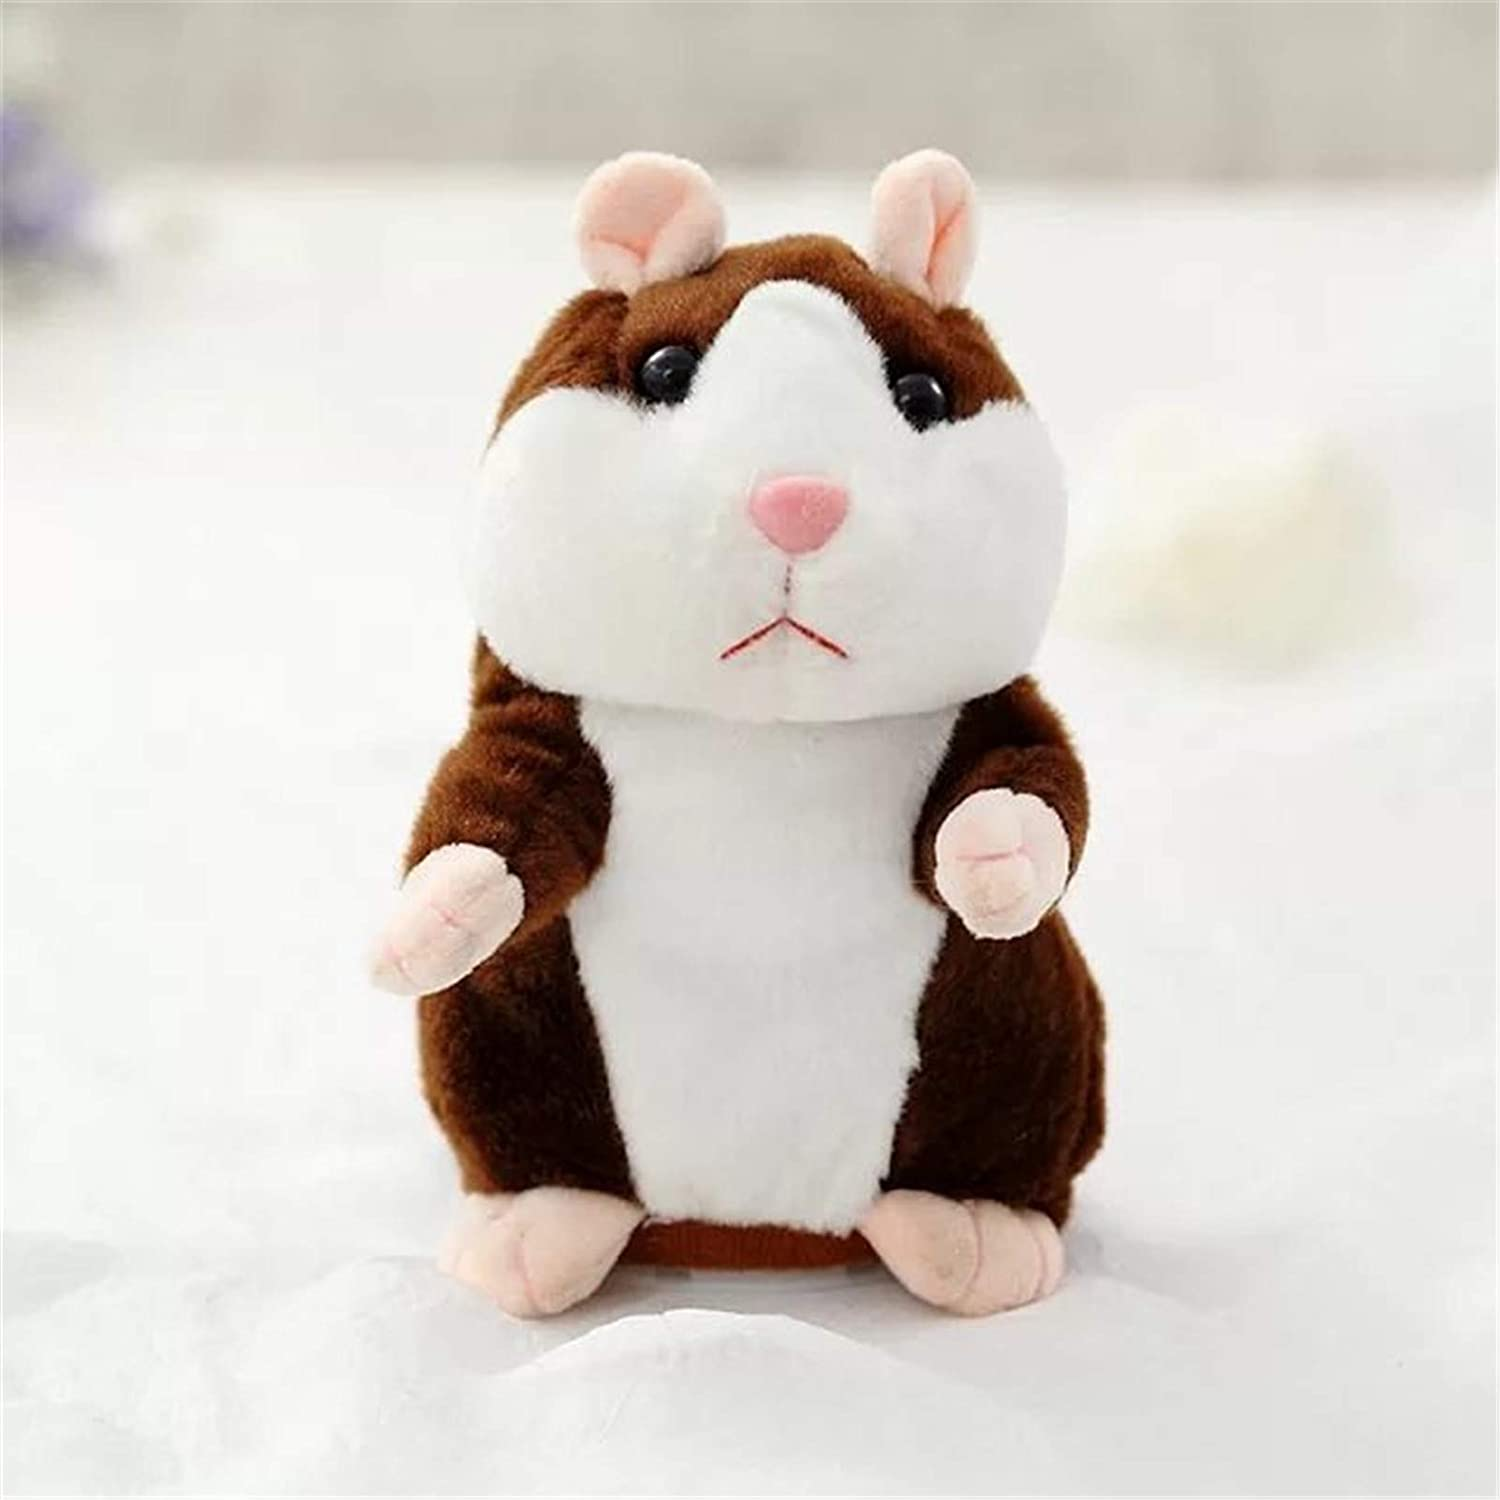 ZSDAS Upgrade Version Talking Hamster Mouse Toy - Repeats What You Say and Can Walk - Electronic Pet Talking Plush Buddy Hamster Mouse for Kids Gift Party Toys A3 16CM